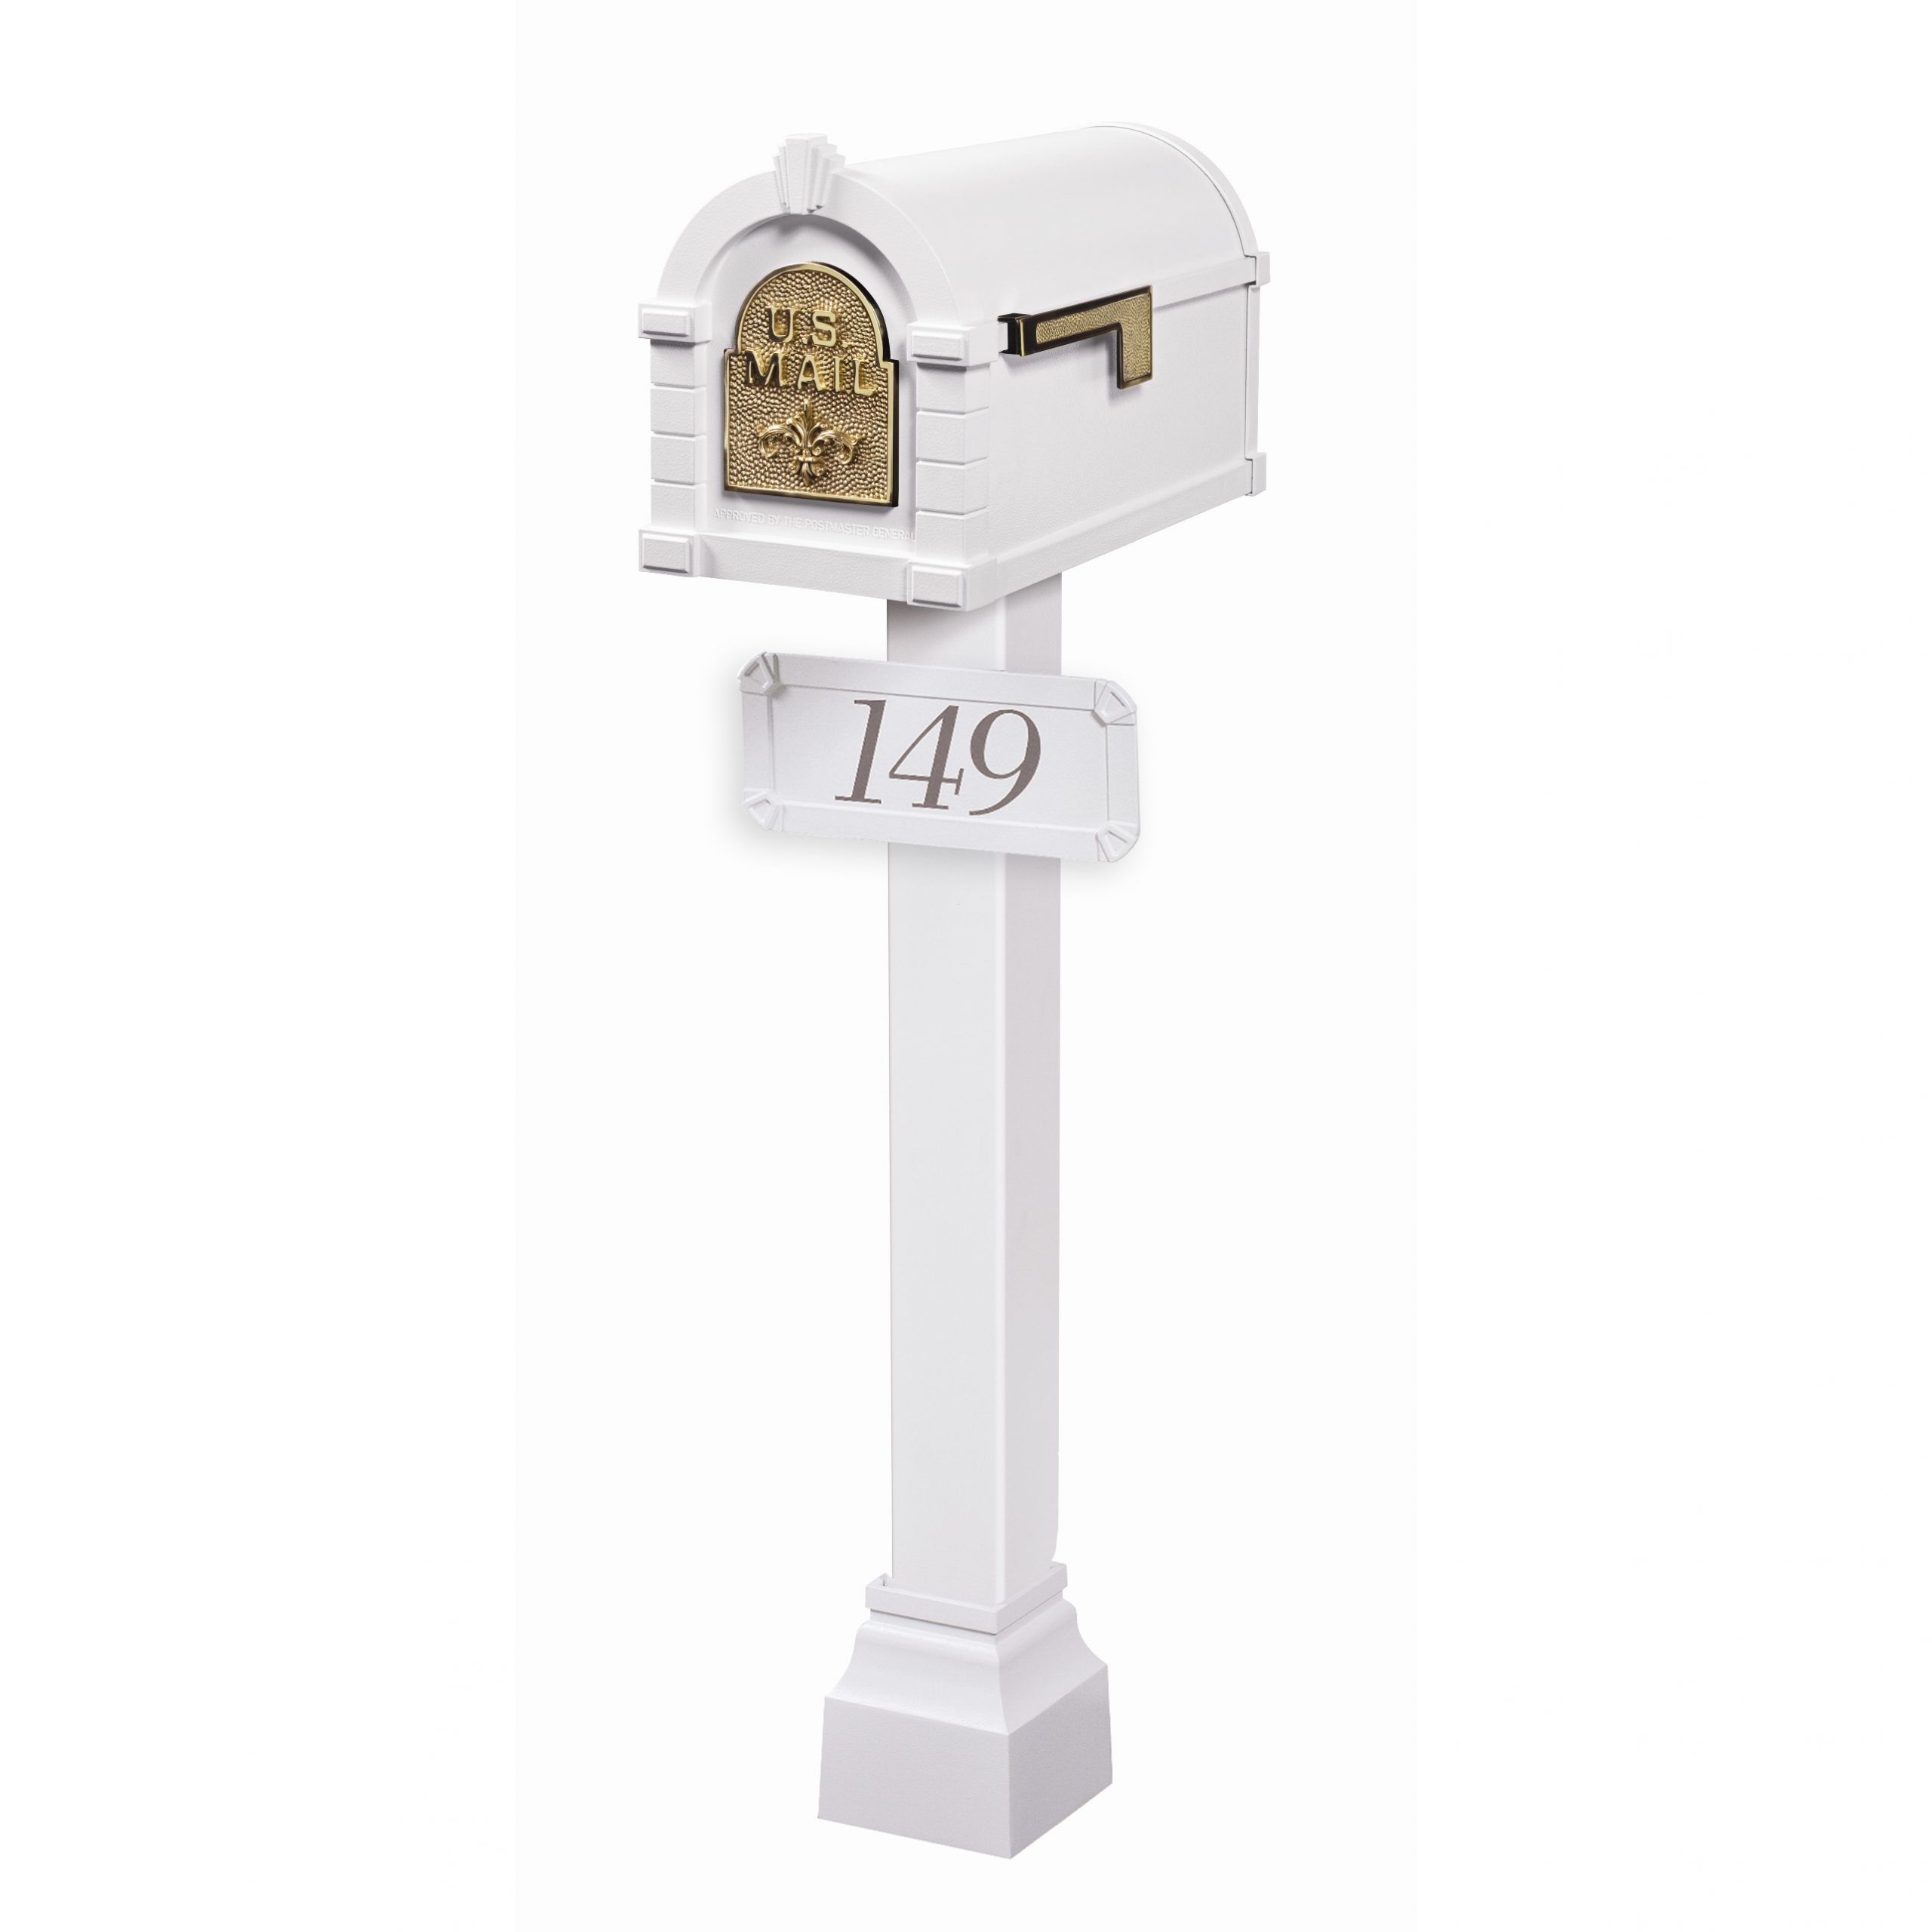 Picture of: Gaines Fleur De Lis Keystone Mailbox With Standard Post